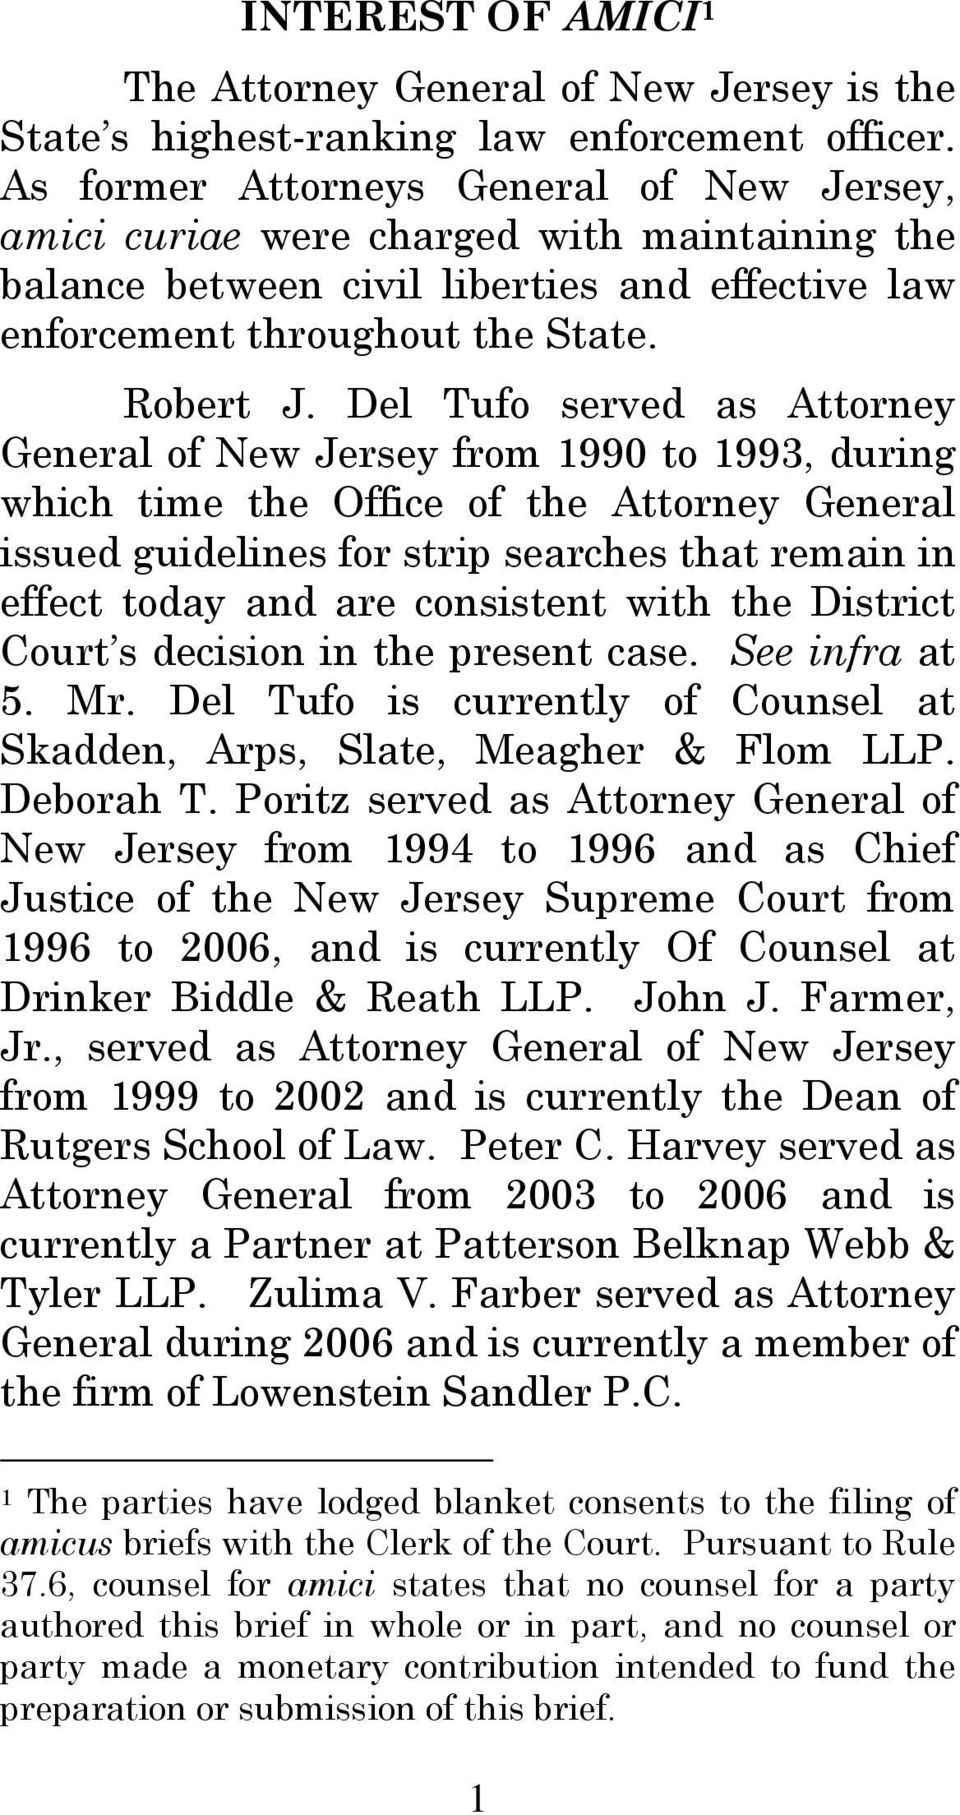 Del Tufo served as Attorney General of New Jersey from 1990 to 1993, during which time the Office of the Attorney General issued guidelines for strip searches that remain in effect today and are